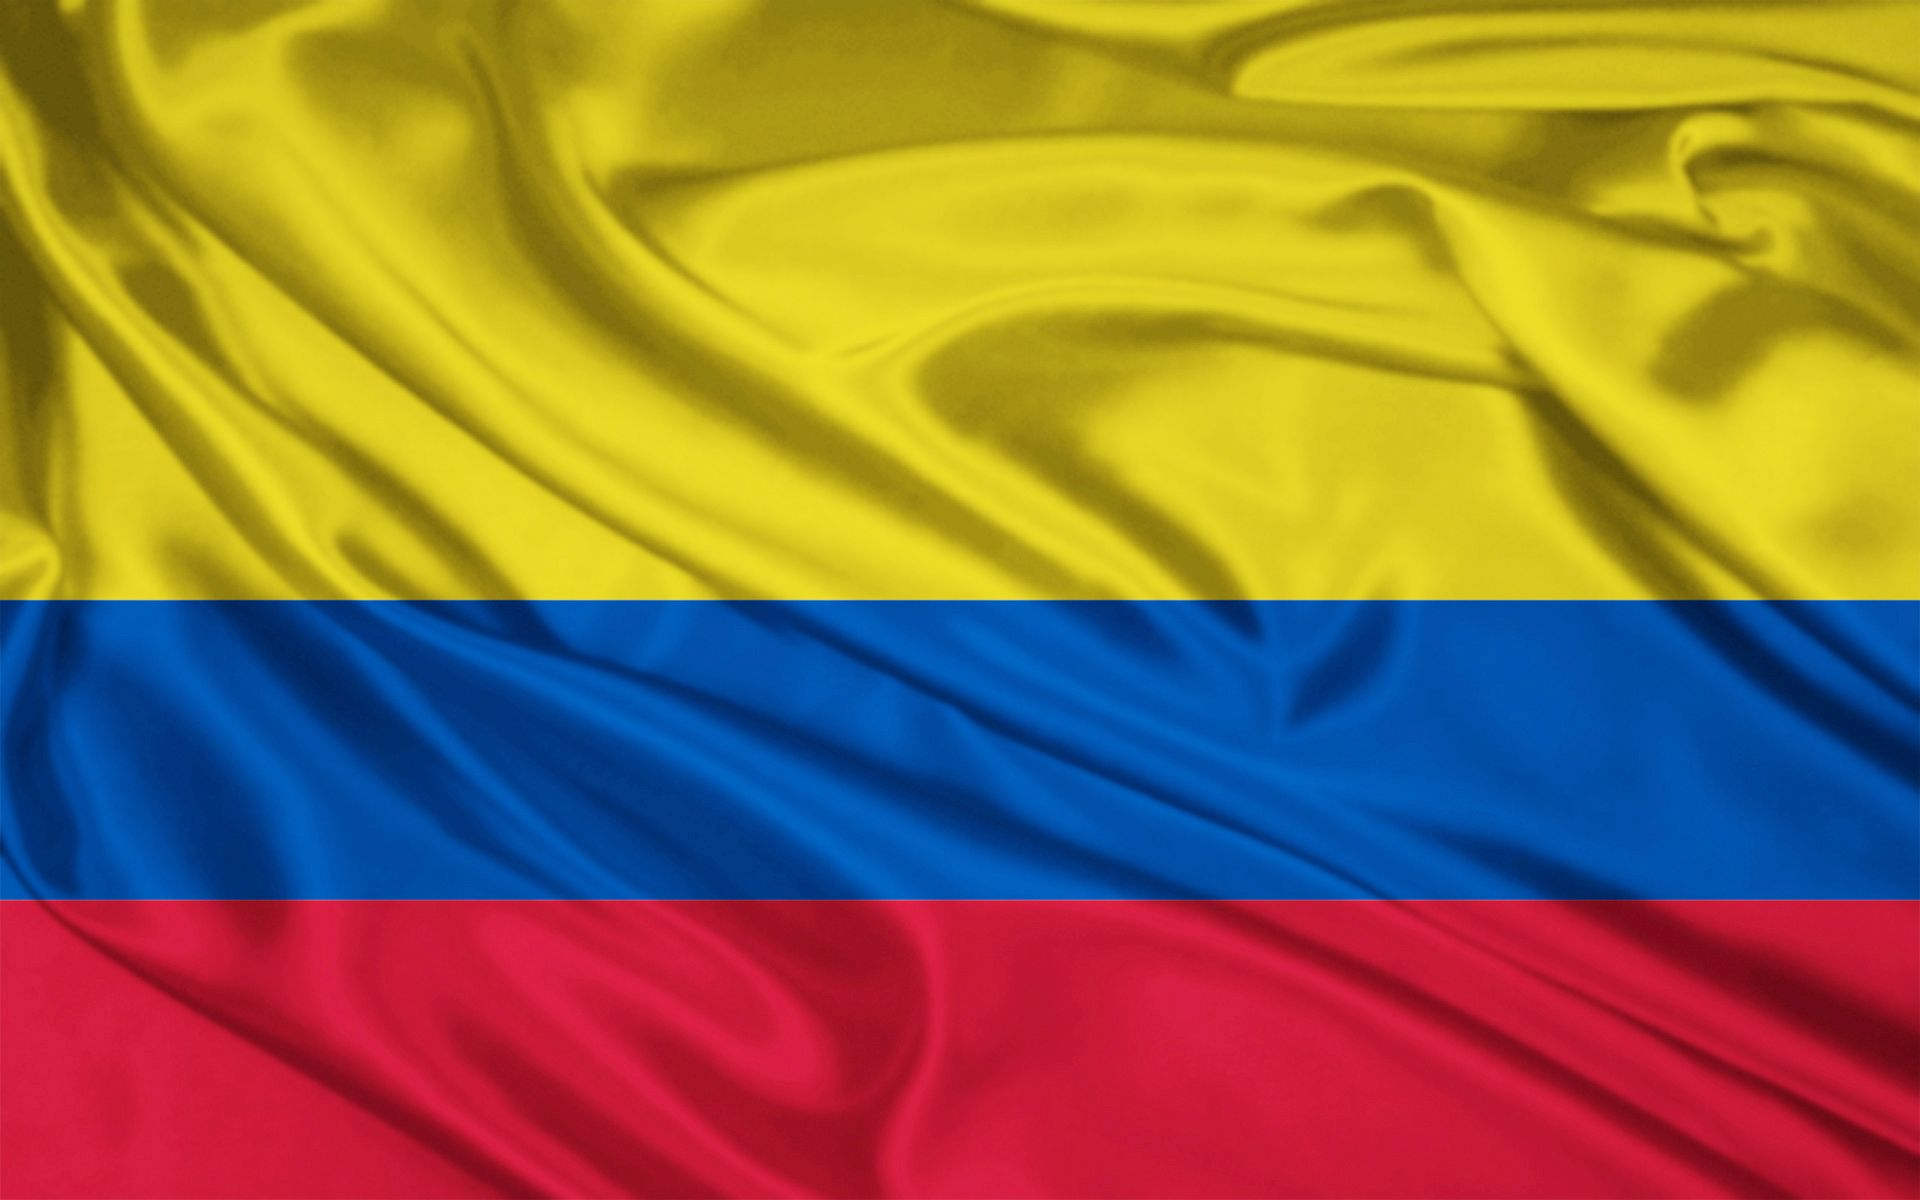 Flag In This Picture It Shows A Colombian Flag Yellow On The Flag Represents The Gold That Is One Of Their Big Ex Bandera De Colombia Colombia Fotos Colombia